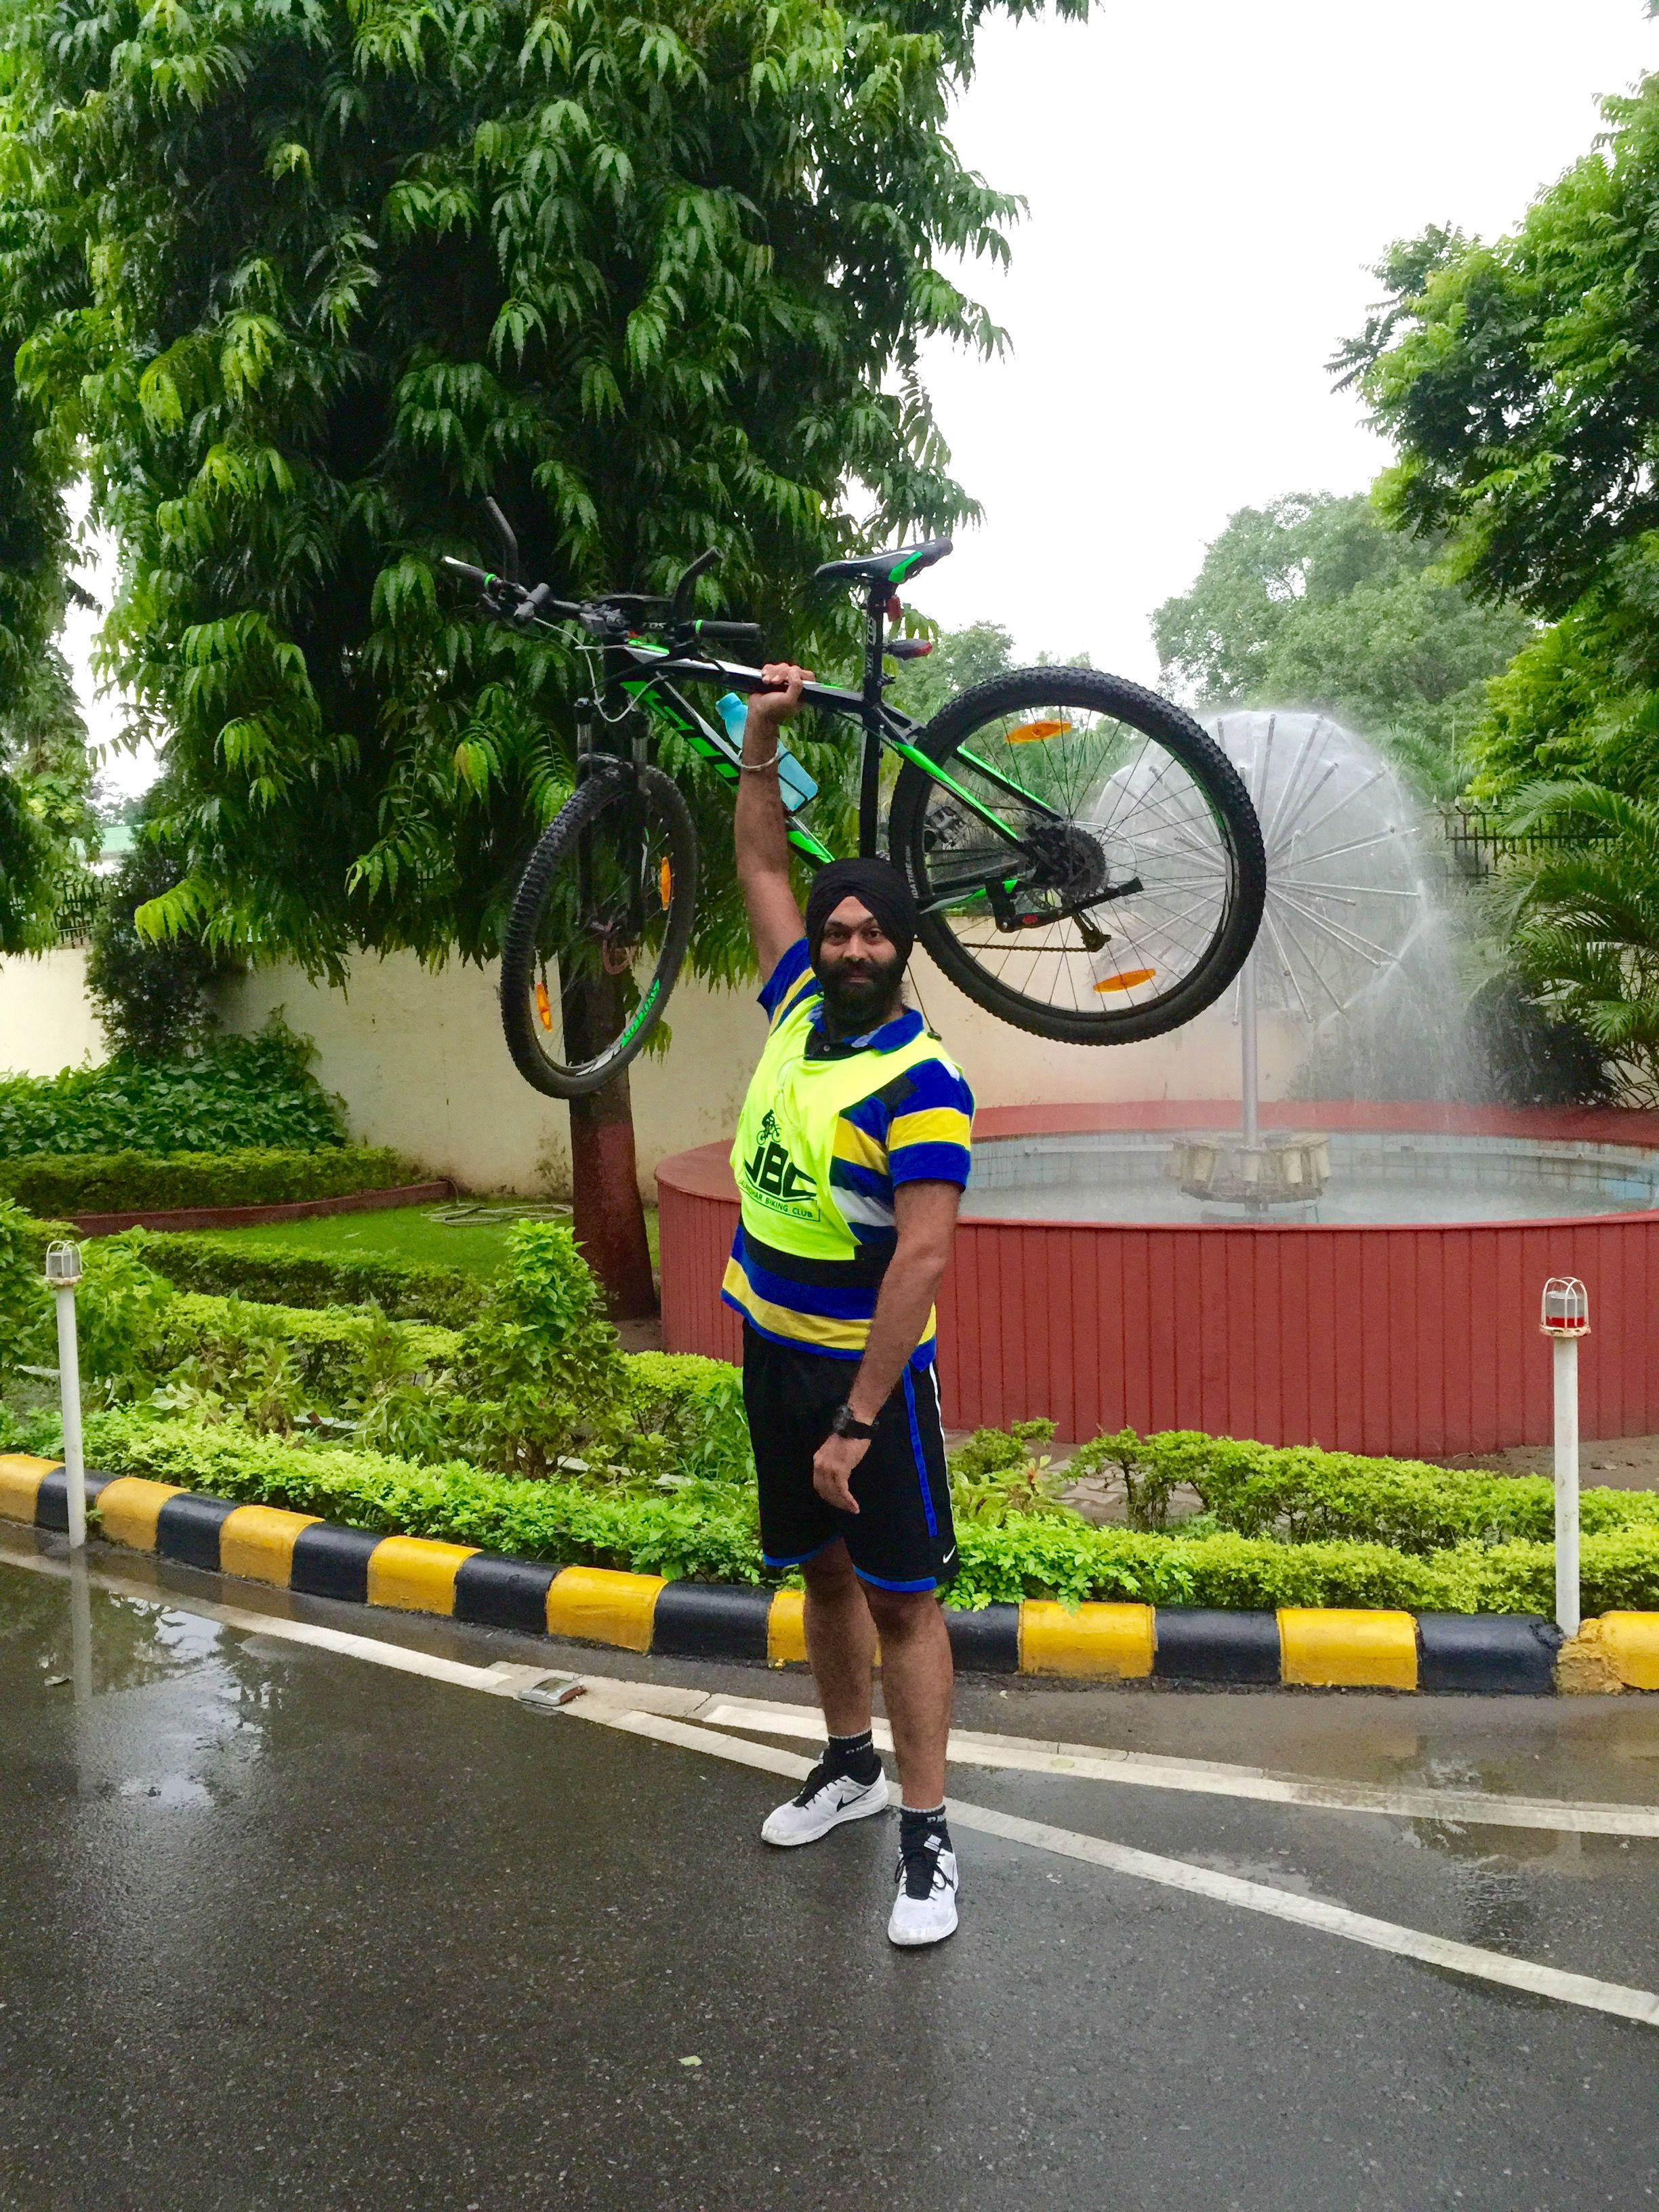 Rainy day riding, team JBC , India